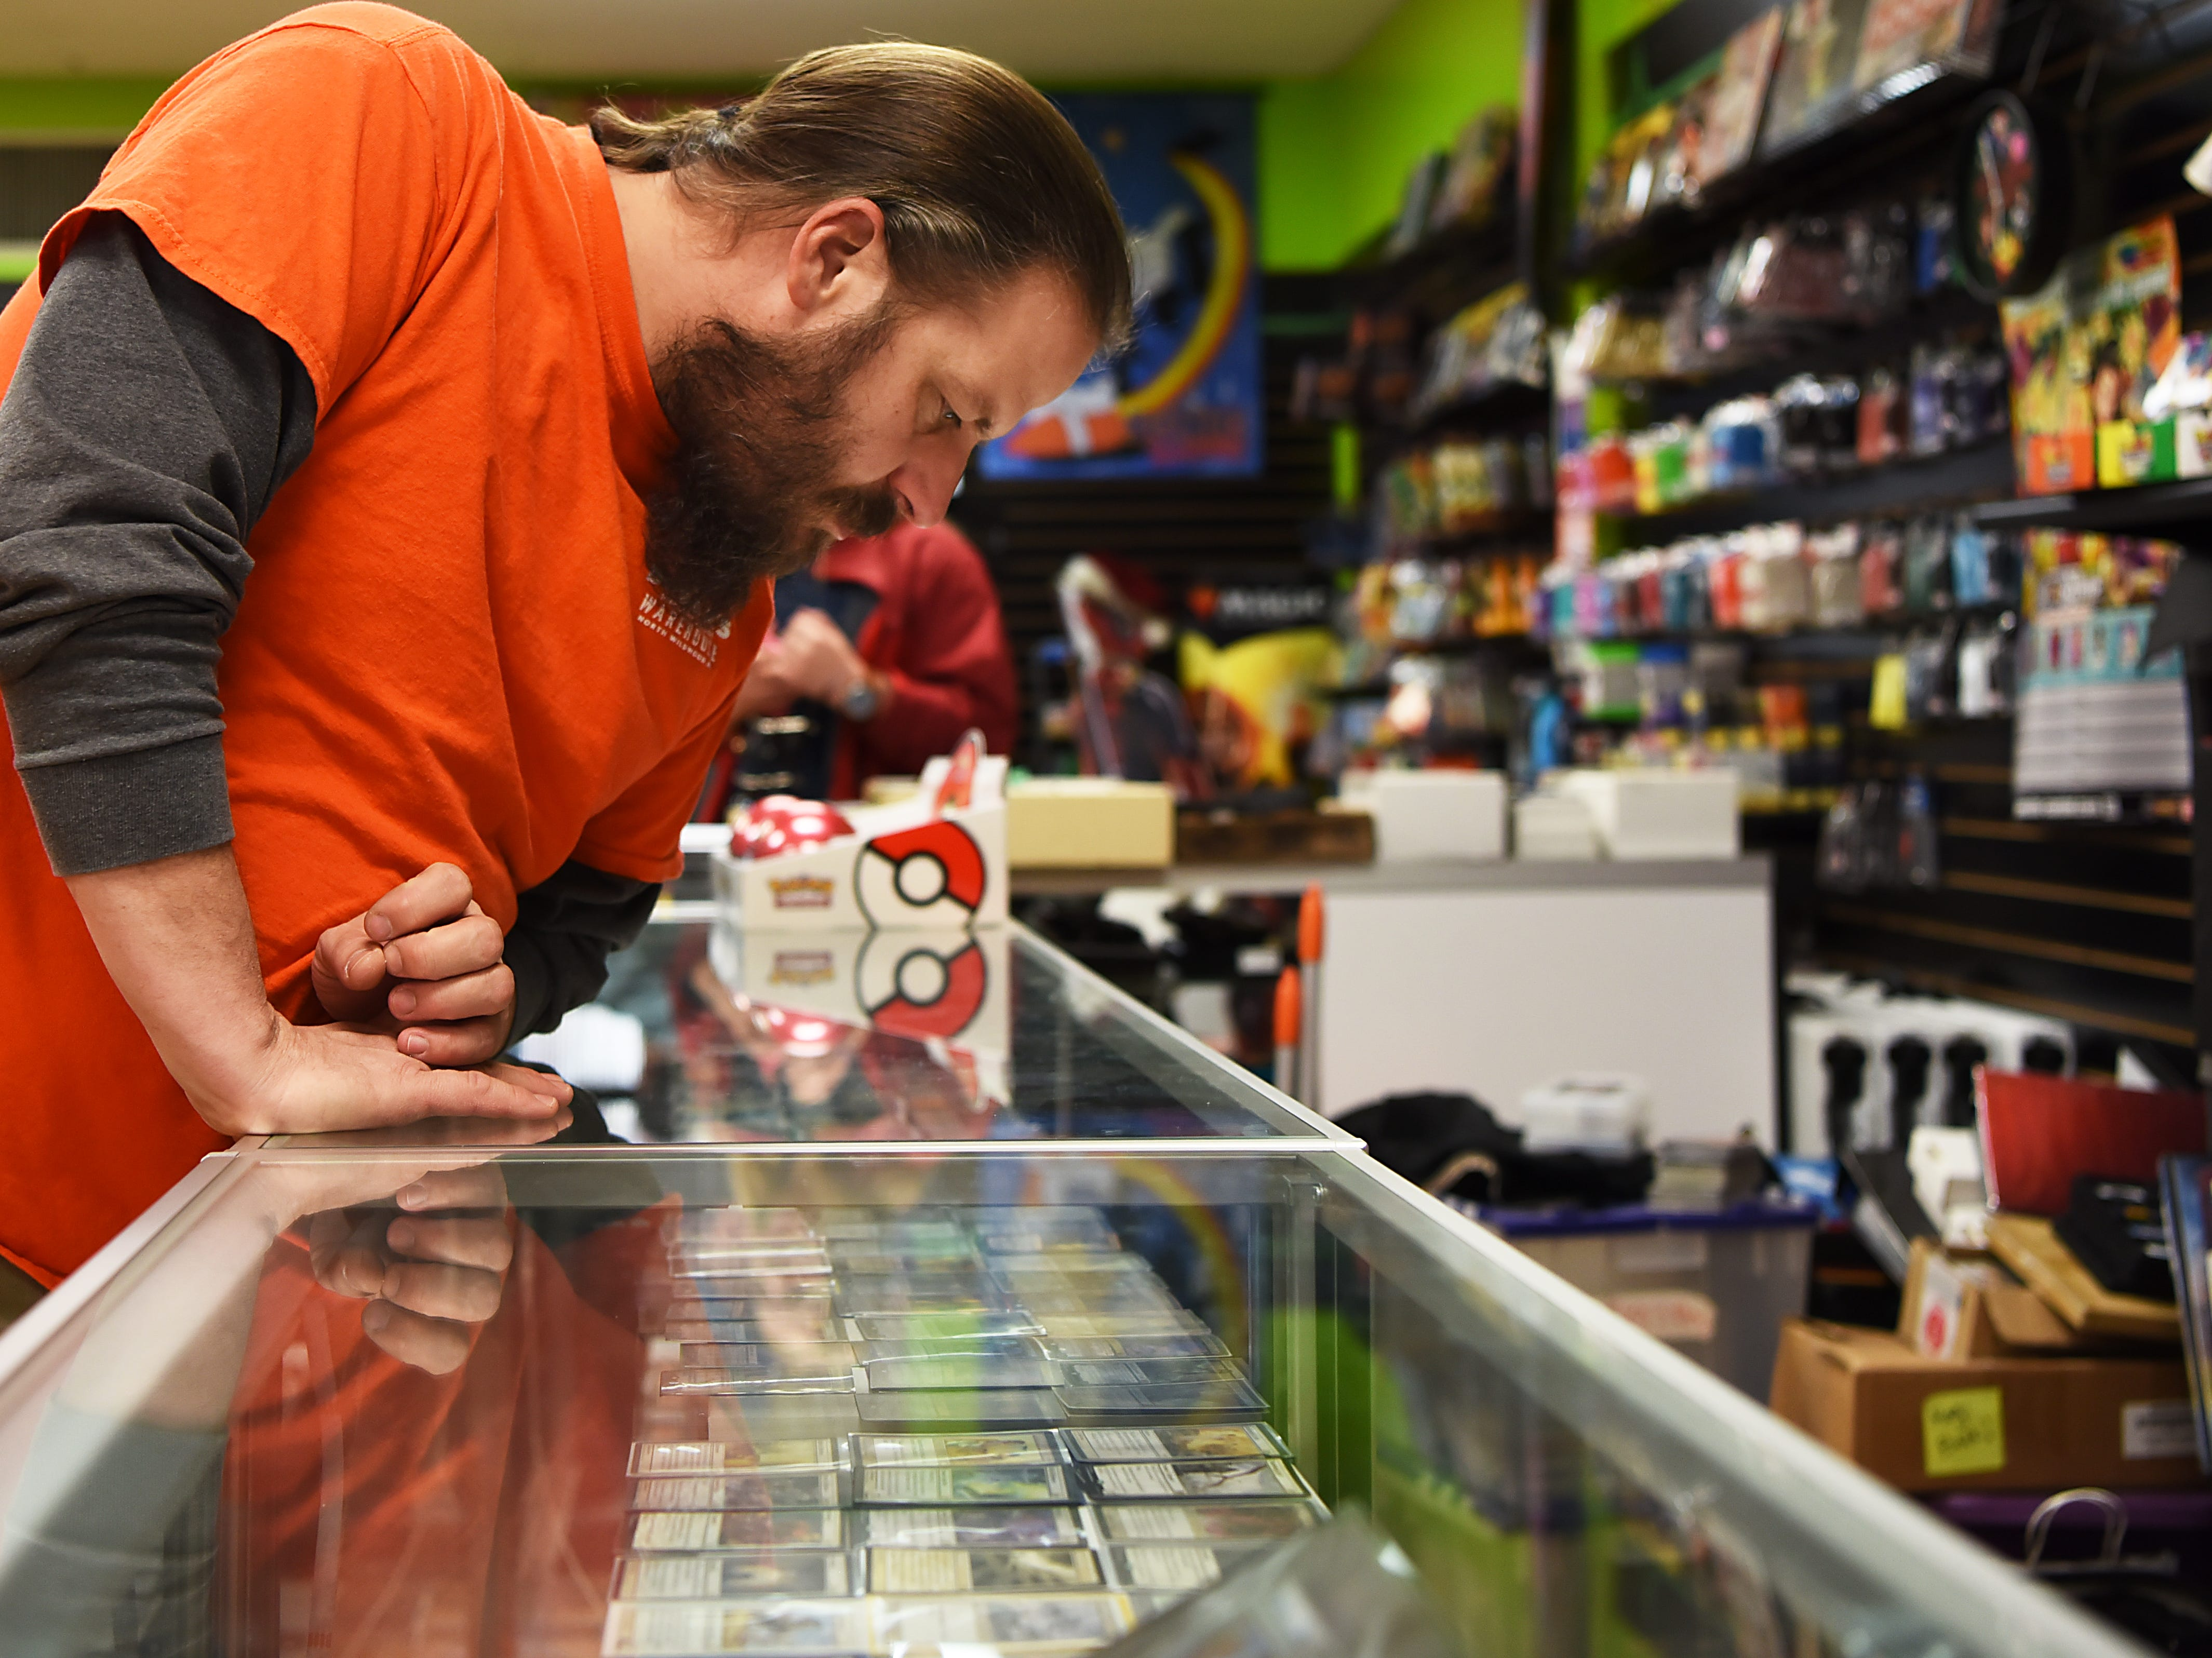 Ian Dampman from Pompton Lakes looks at Magic: The Gathering cards at Level 1 Games in Pompton Plains on Friday November 30, 2018.